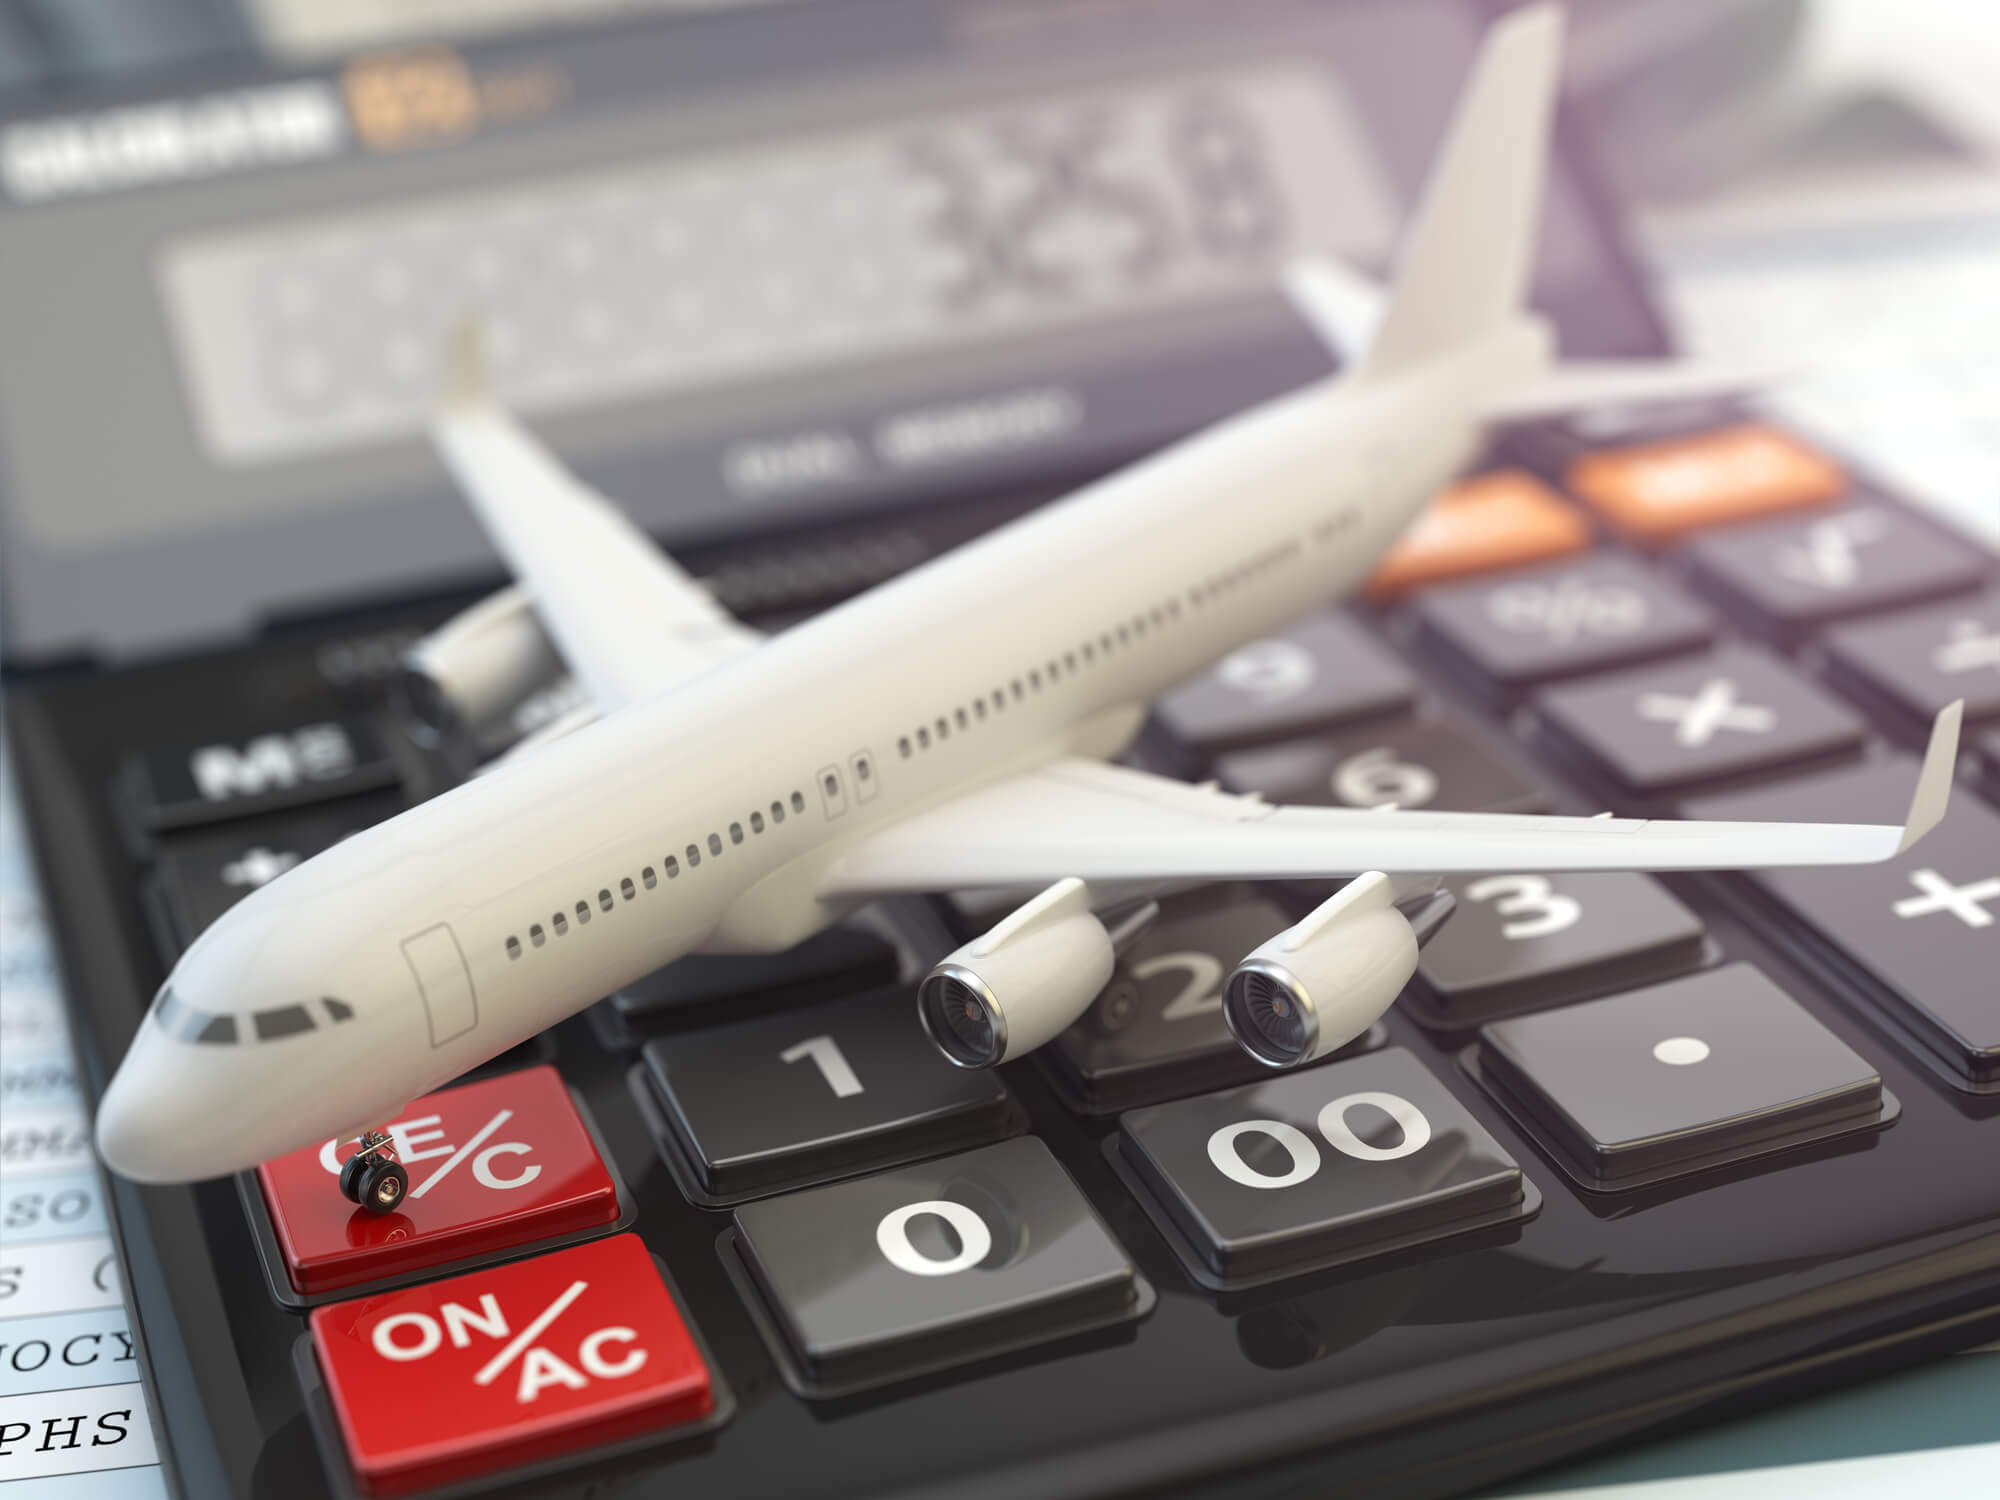 Miniature airplane laying across a calculator to symbolize travel management